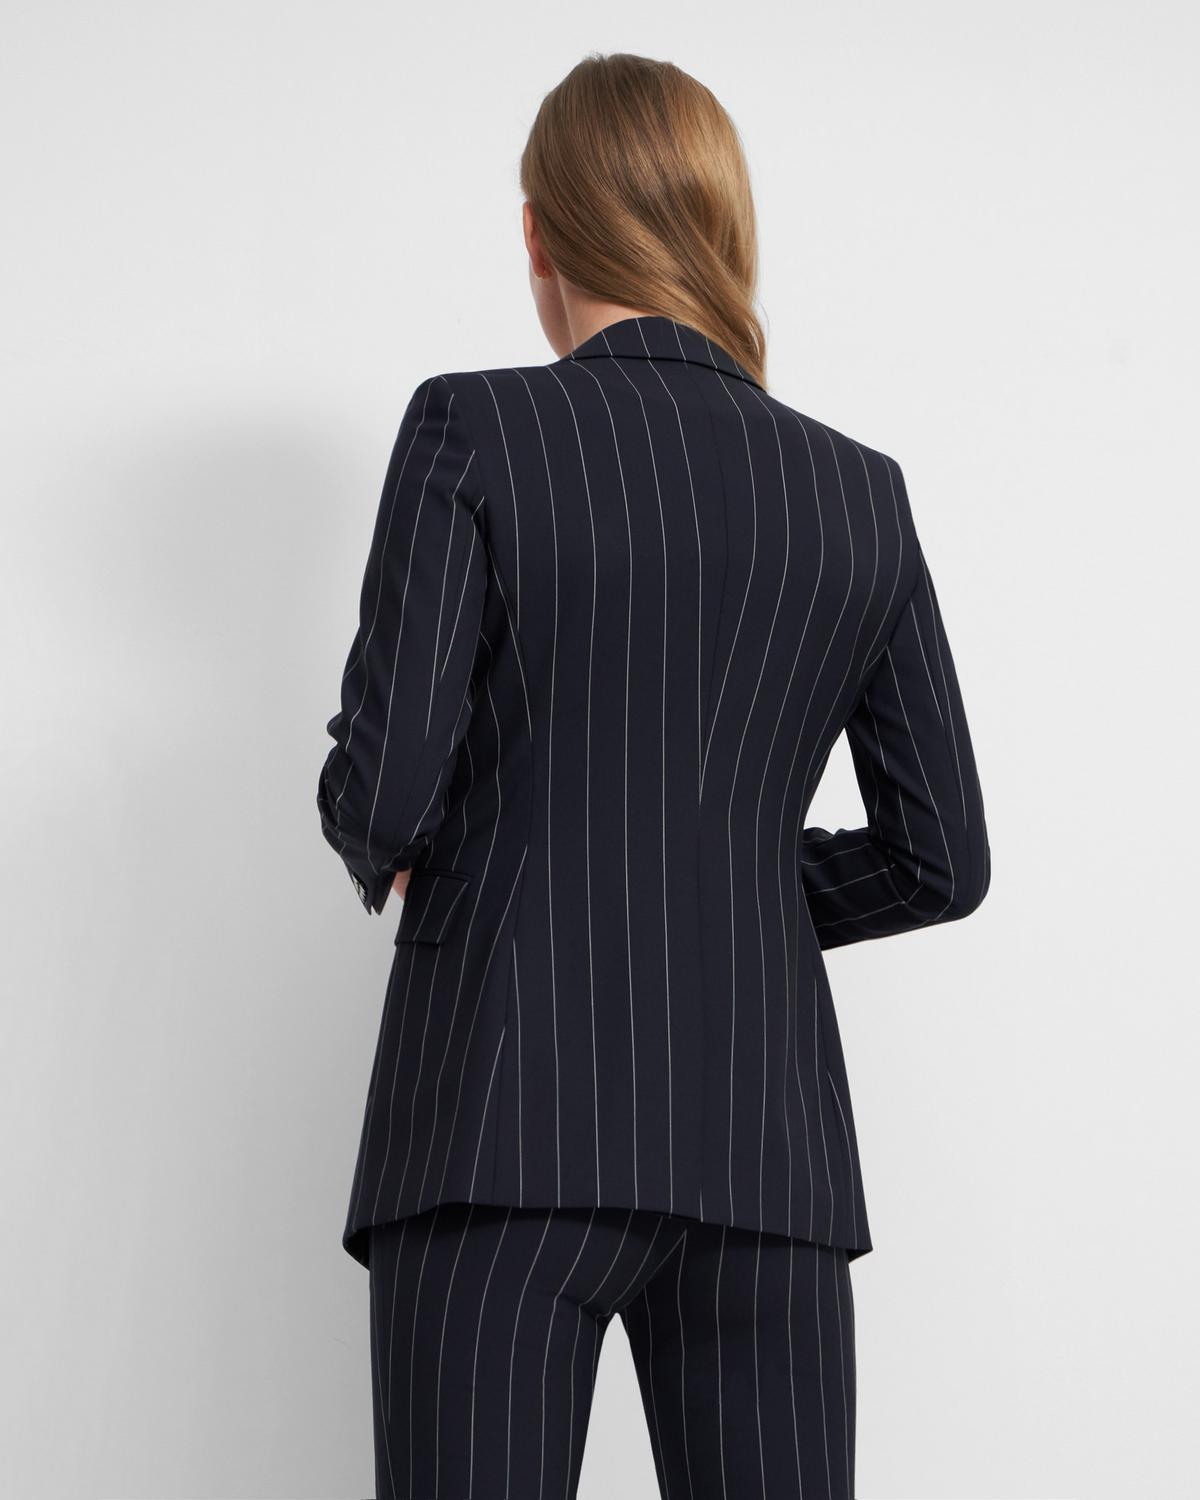 Etiennette Blazer in Striped Good Wool